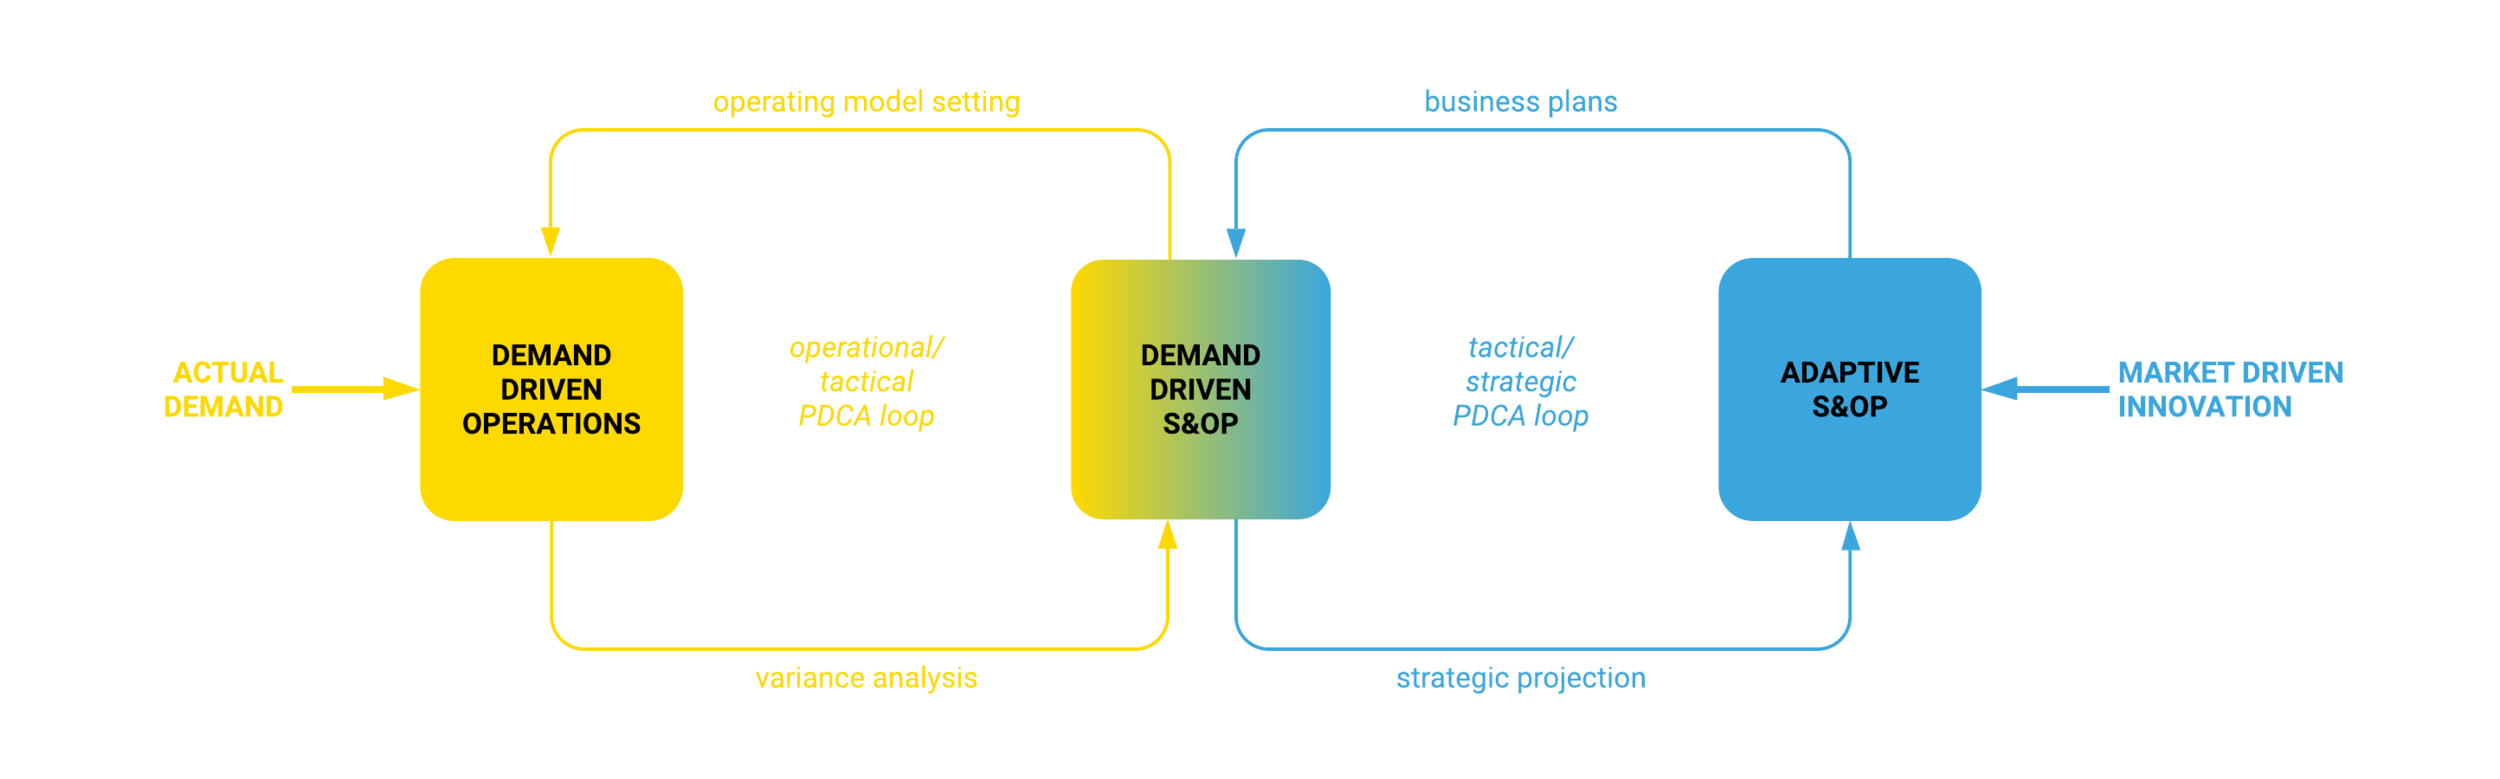 A DEMAND DRIVEN organisation is built around processes designed to provide RELEVANT INFORMATION for decision making at the strategic, tactical and operational levels. The entire organisation will thus become fully aligned in delivering VALUE TO THE CUSTOMER while MAXIMISING PROFITABILITY. This creates an organisation which is HIGHLY RESPONSIVE and ADAPTIVE to changes in the market in both the long and short term.